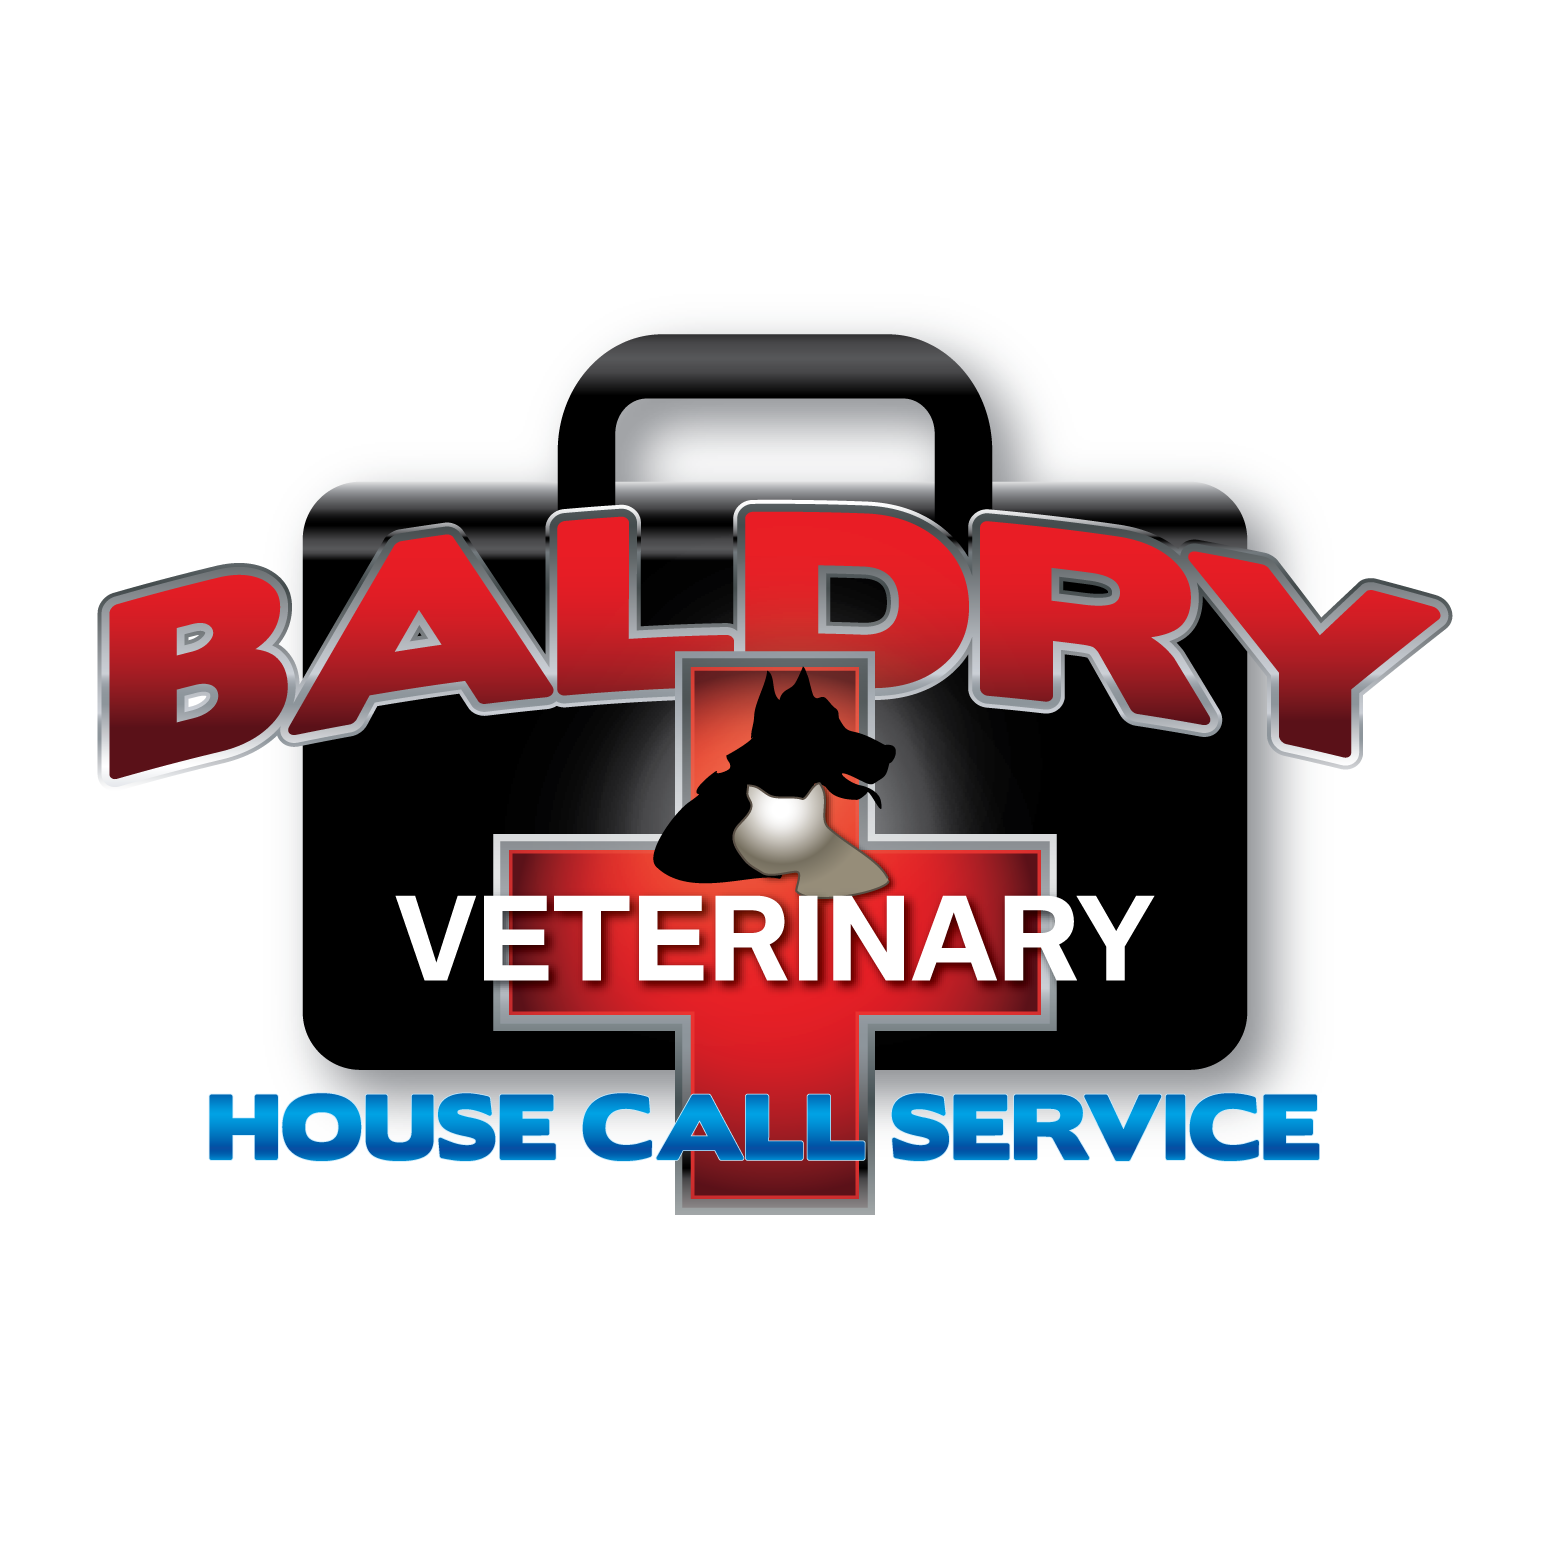 Logo Design by Teresa Abney - Entry No. 69 in the Logo Design Contest Captivating Logo Design for Baldry Veterinary House Call Service.